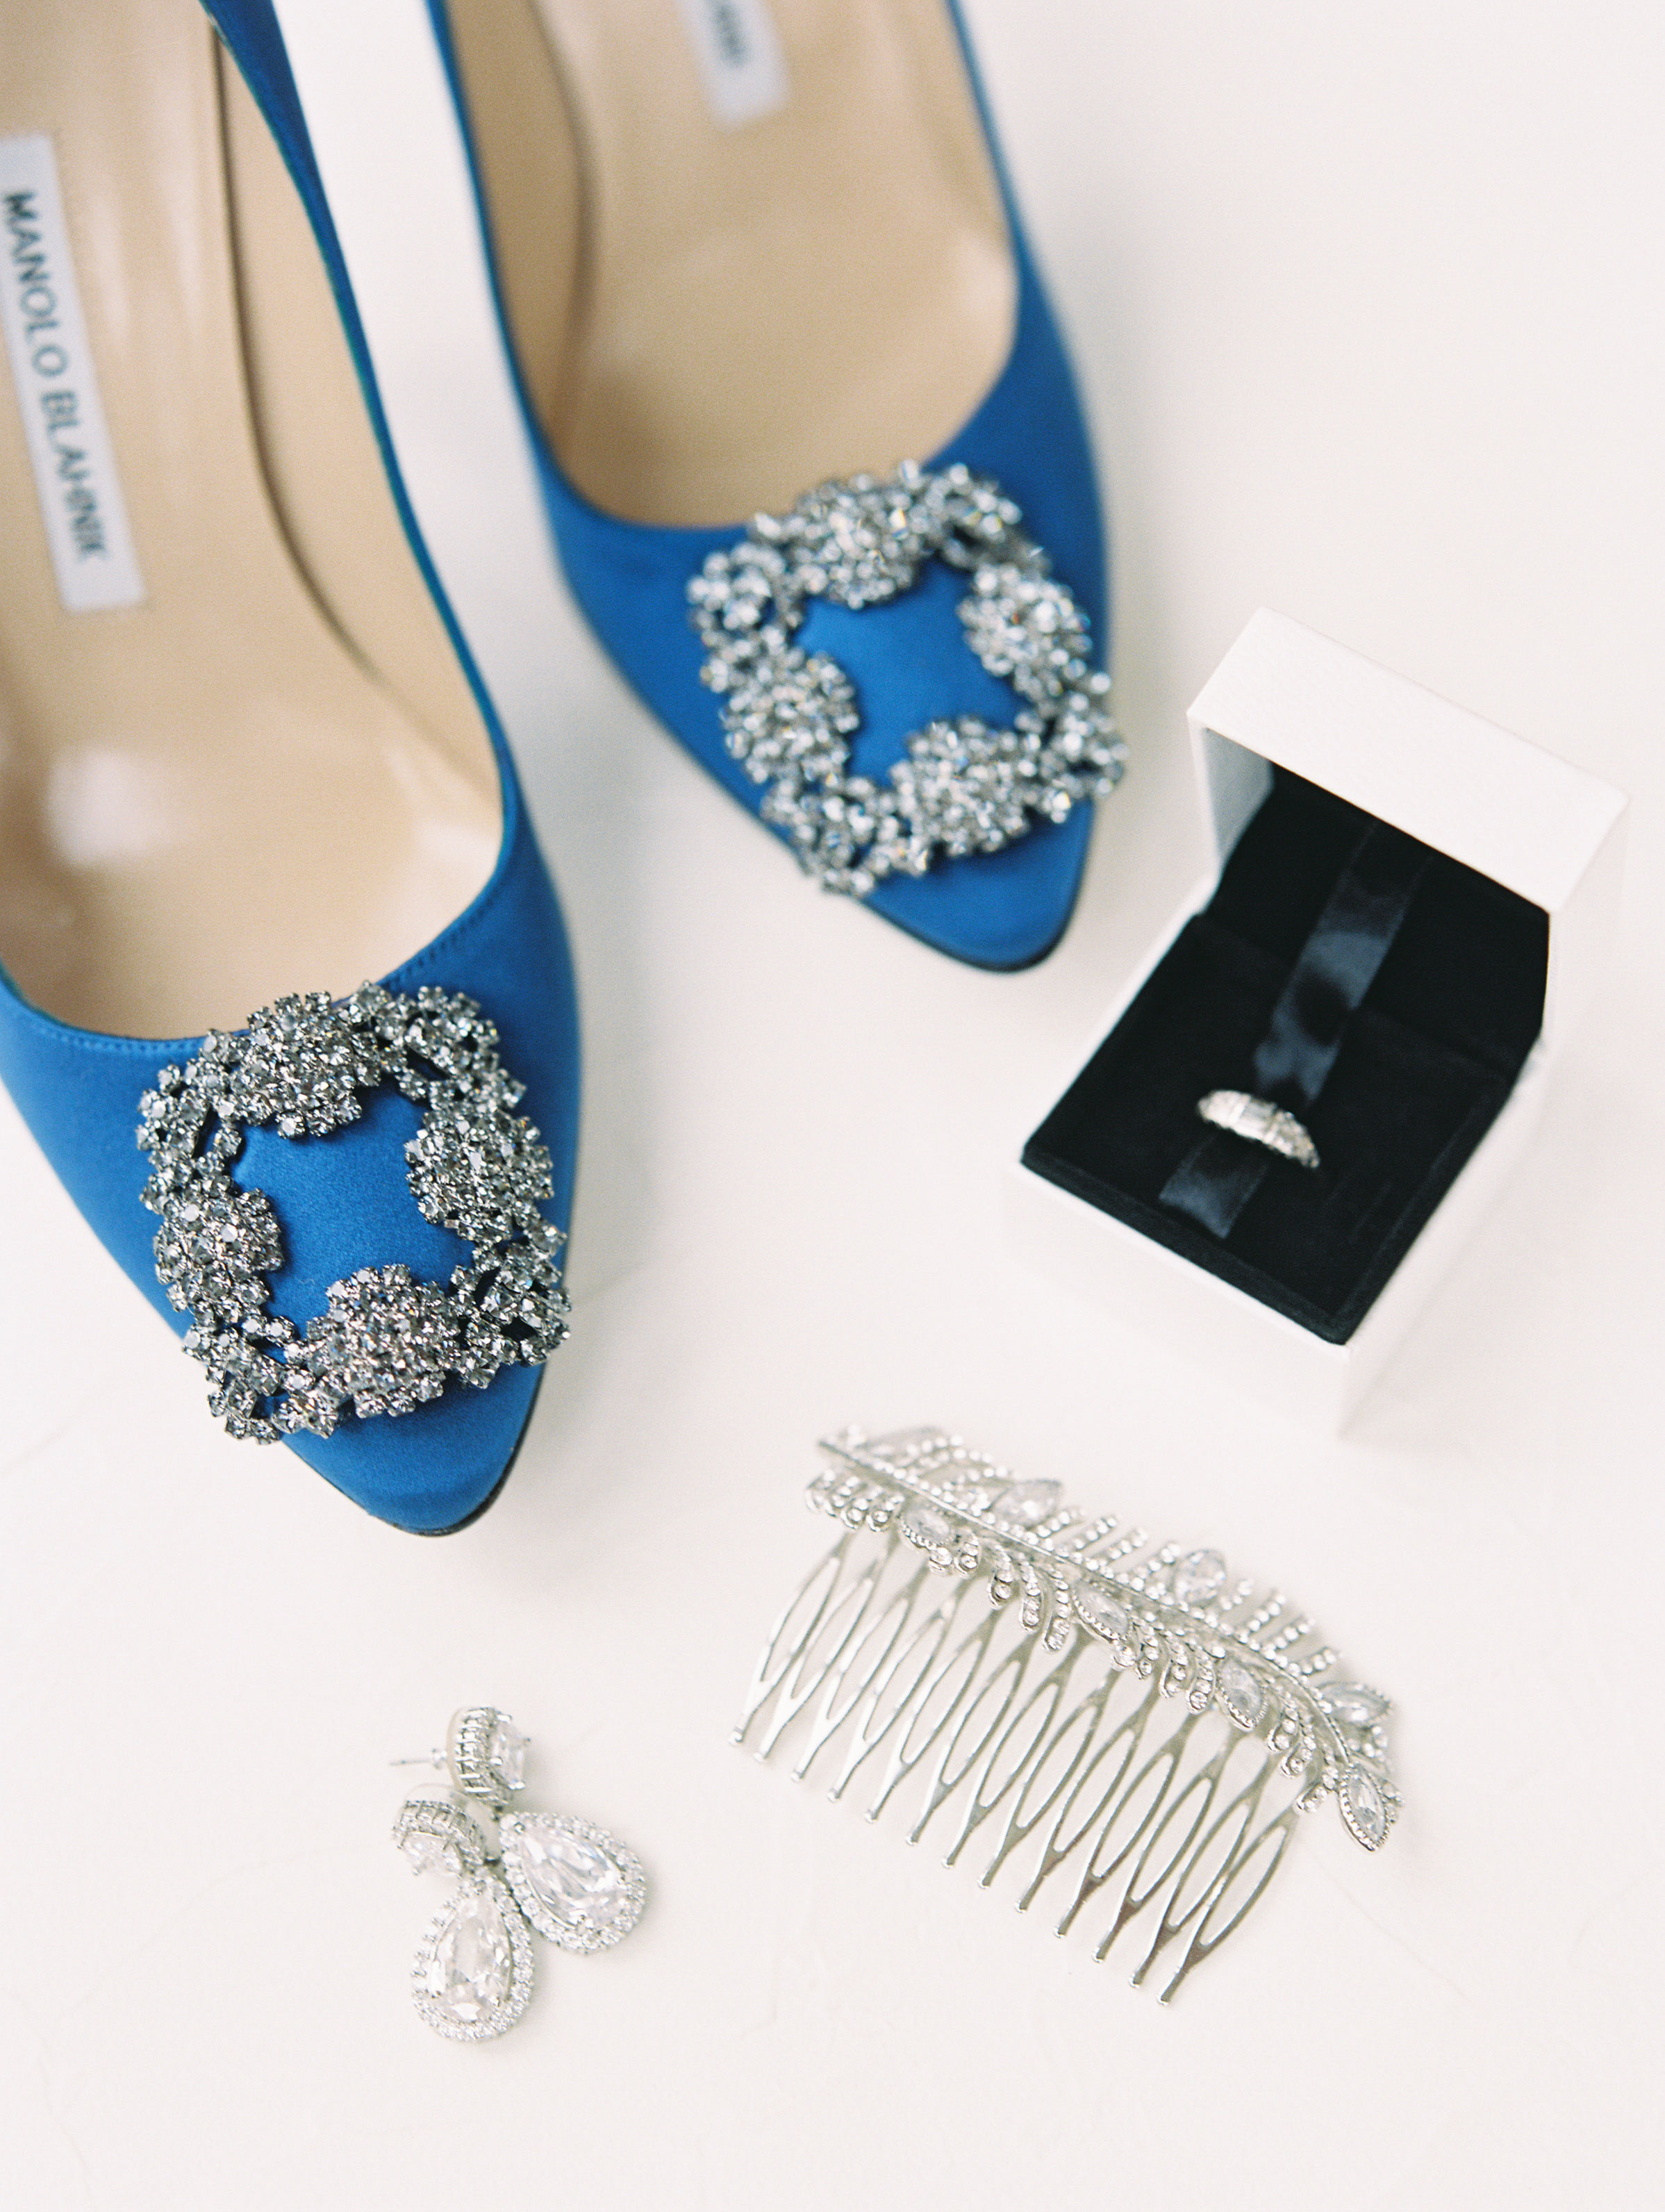 What Type of Shoes Should a Winter Bride Wear?